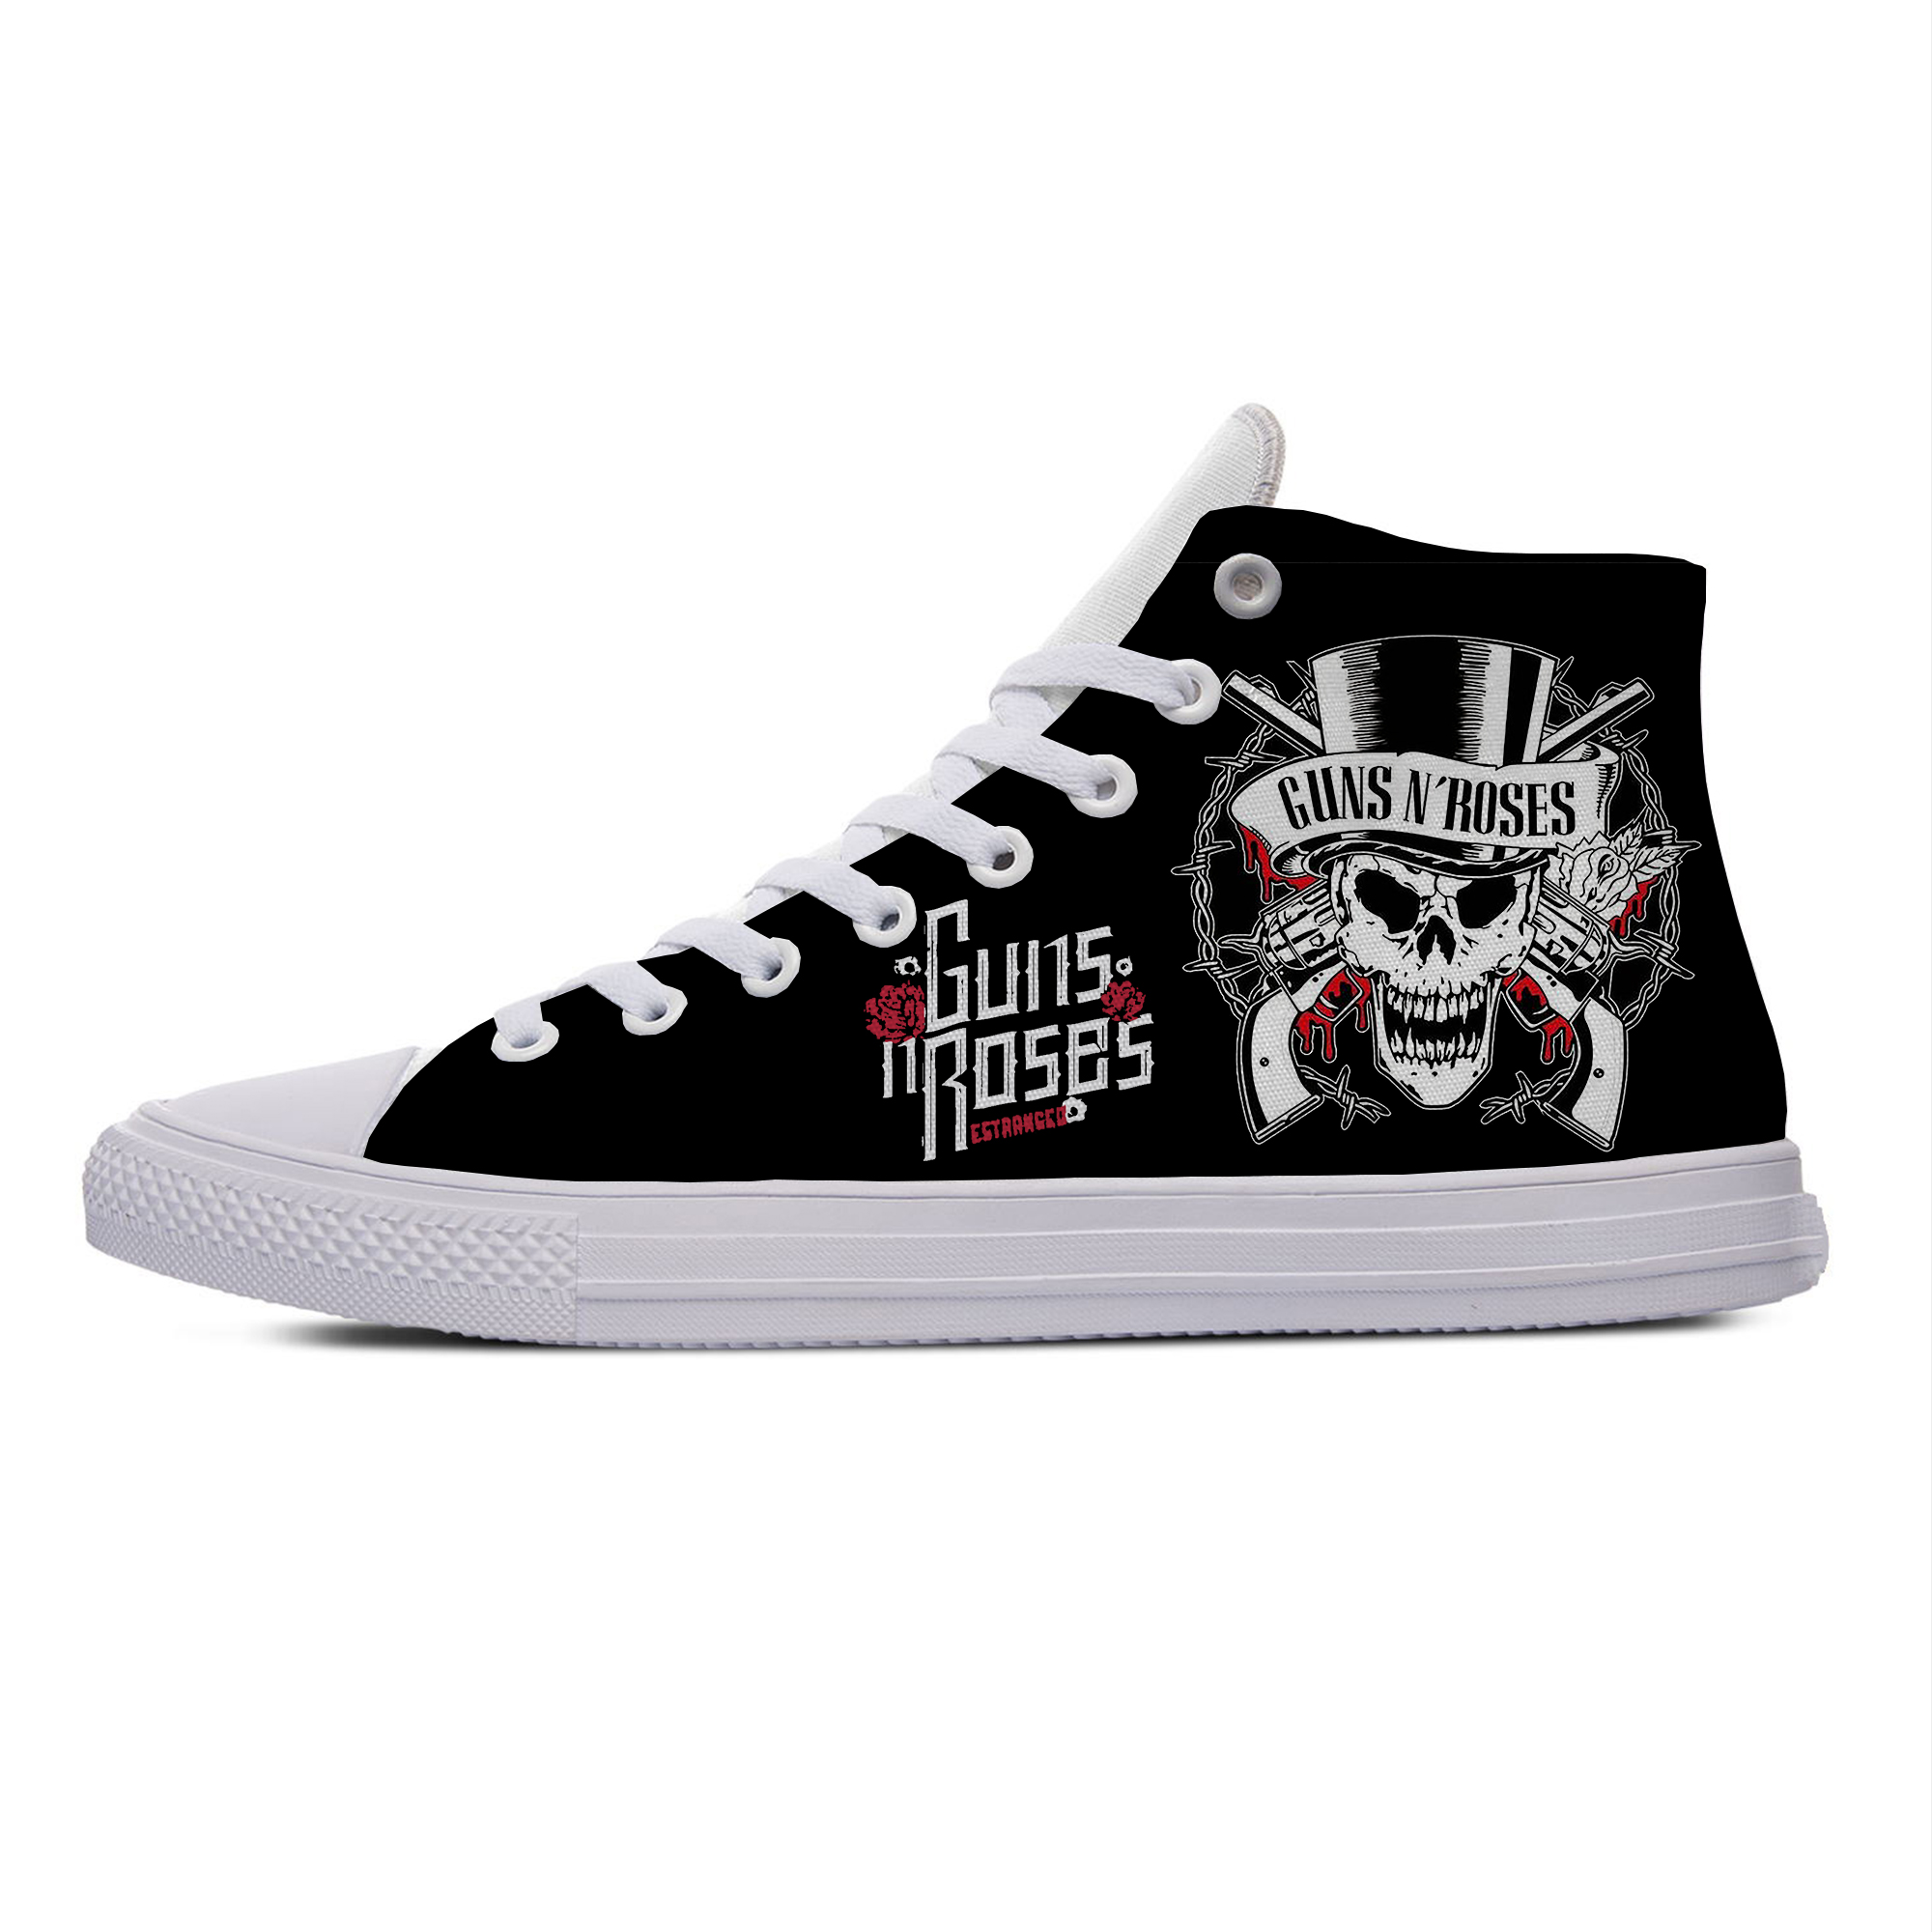 GUNS N ROSE Rock Band Cool Fashion Funny Popular Casual Canvas Shoes High Top Breathable Lightweight Sneakers 3D Print Men Women